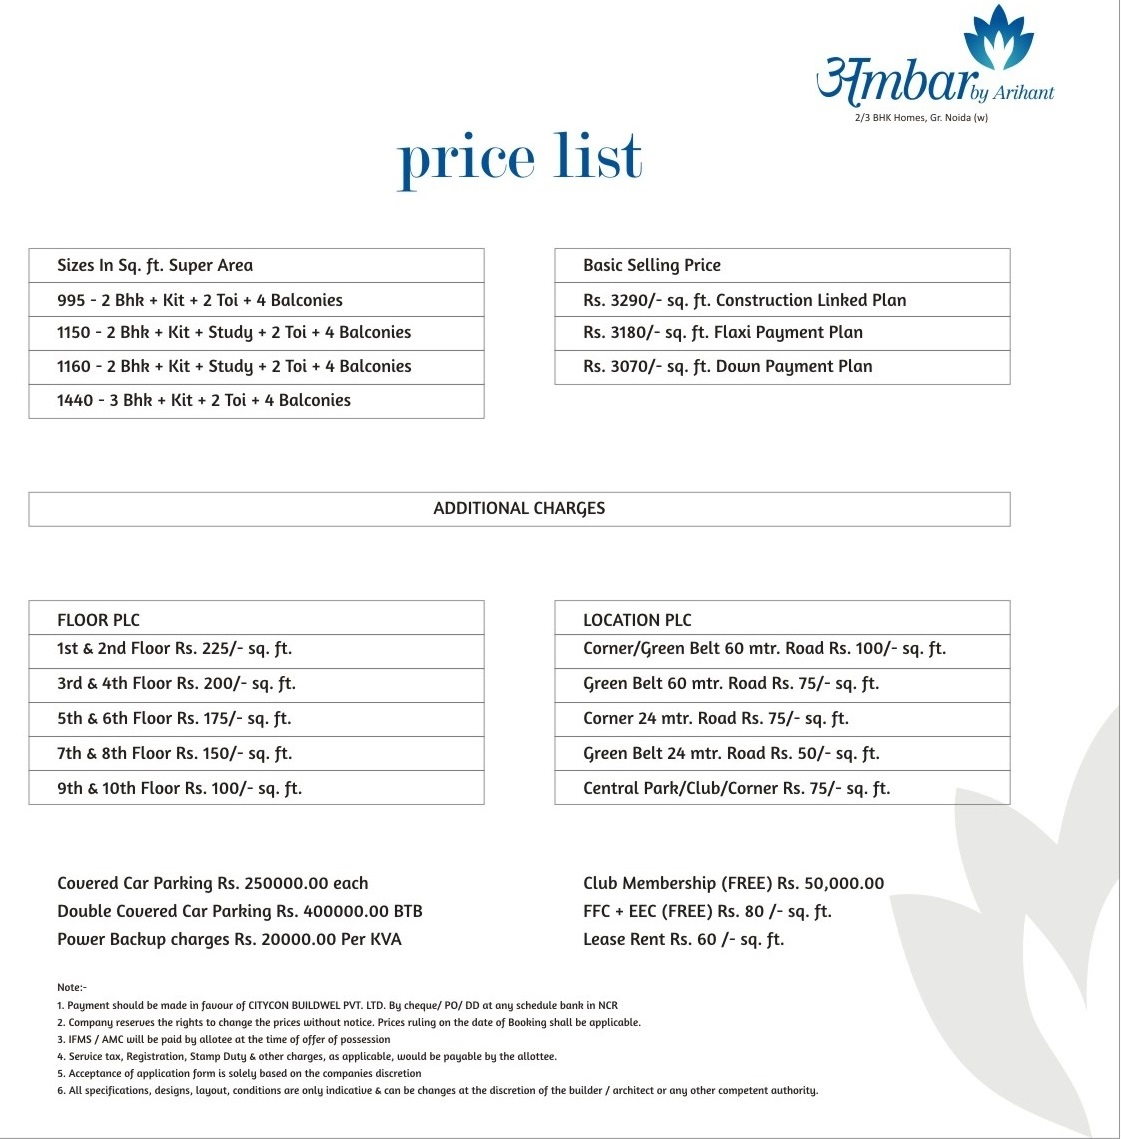 arihant ambar price list